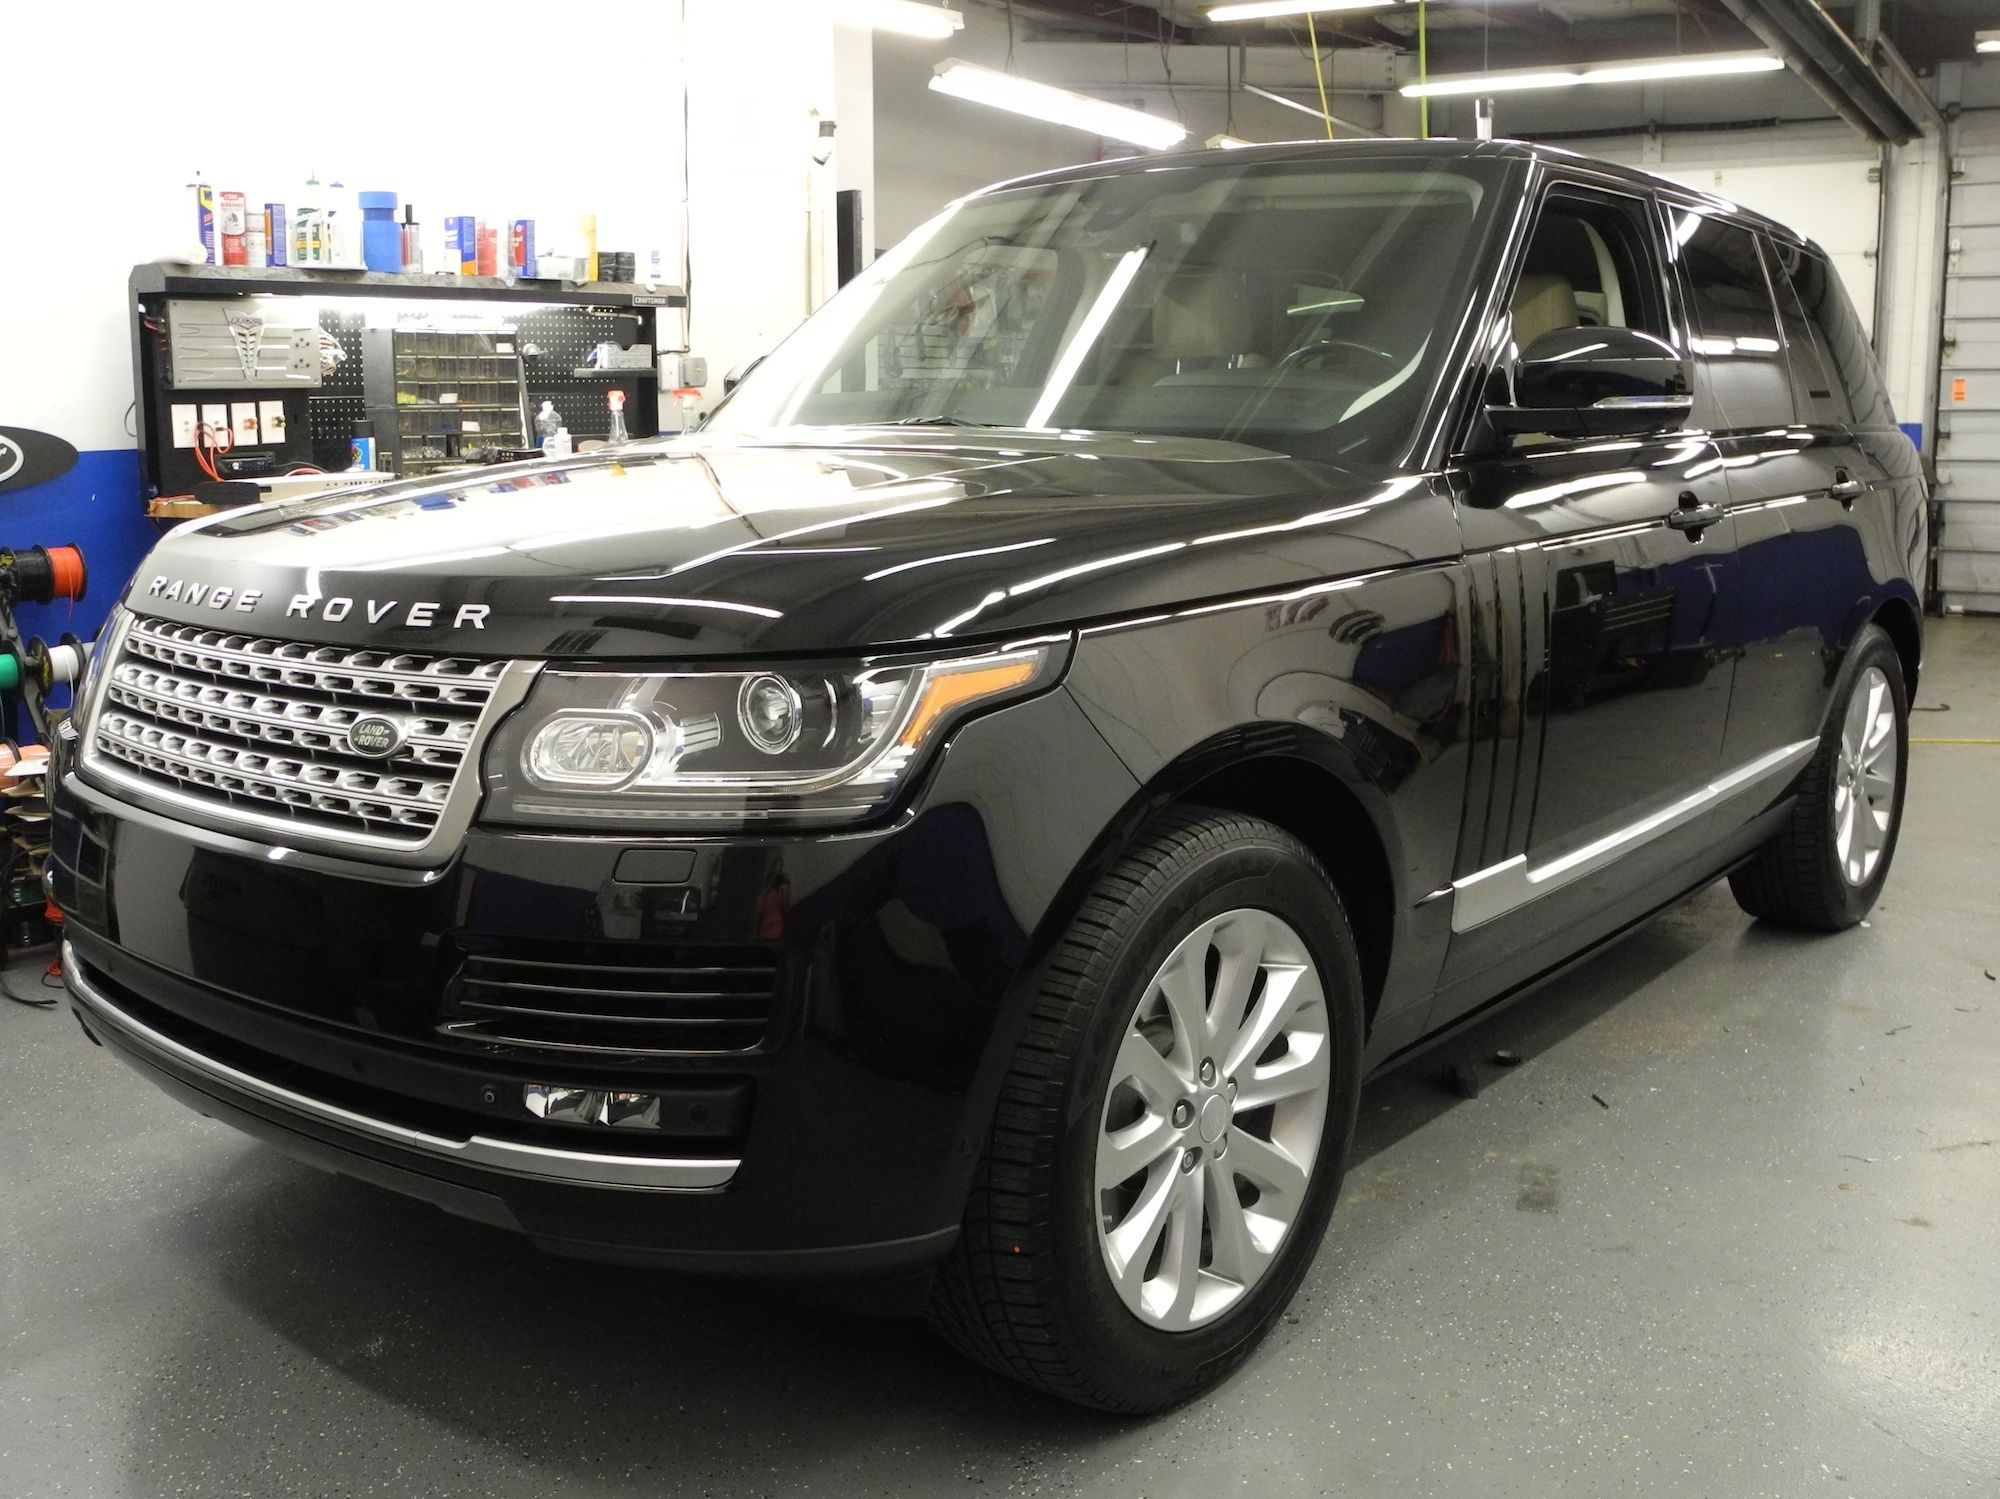 The owner of this Range Rover HSE wanted to add aftermarket